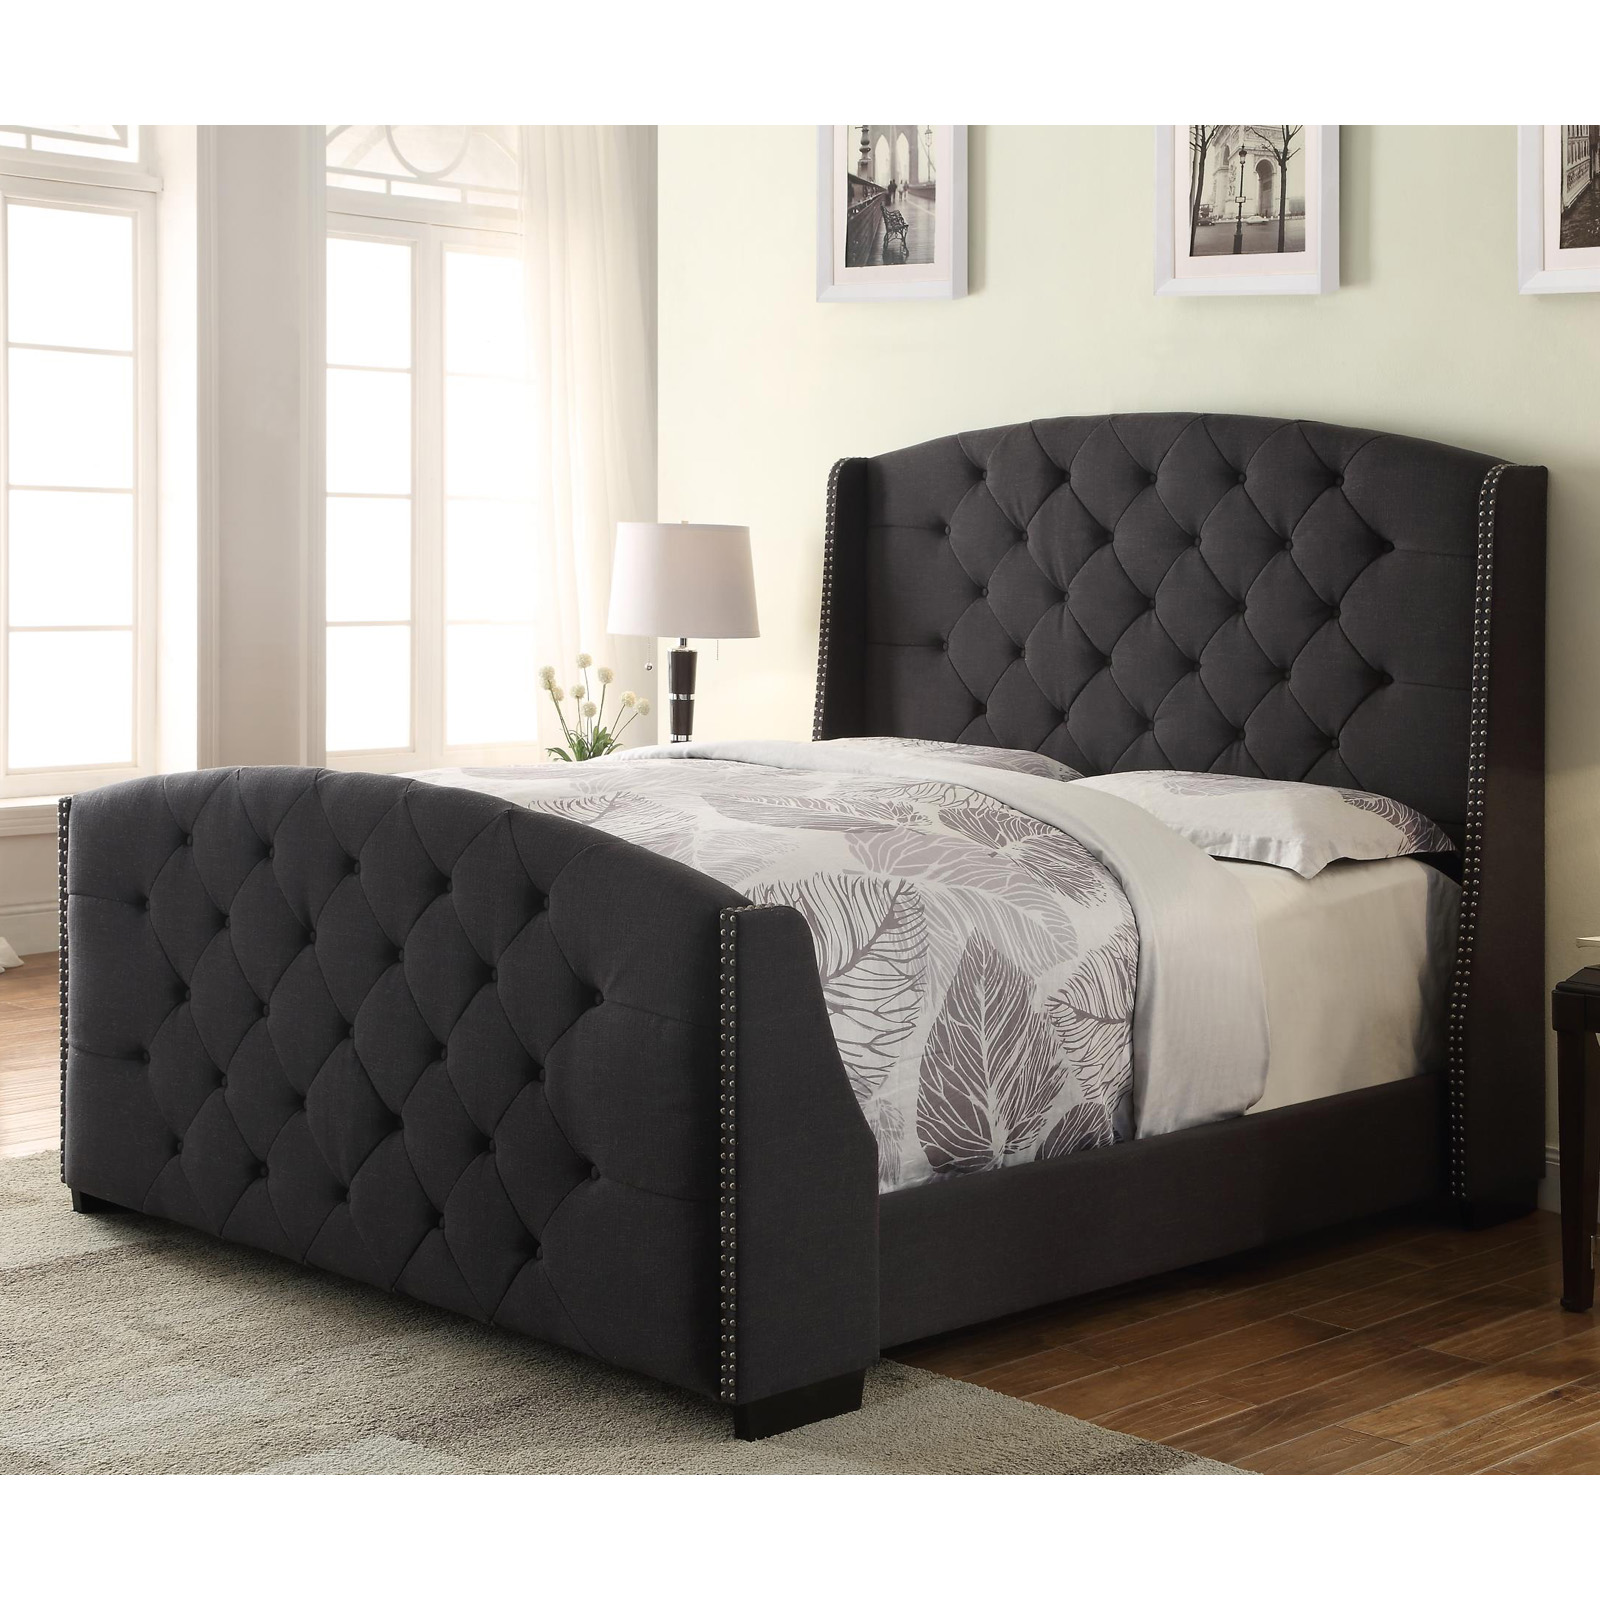 Tufted Queen Bed Tufted Wingback Upholstered Queen Bed At Hayneedle